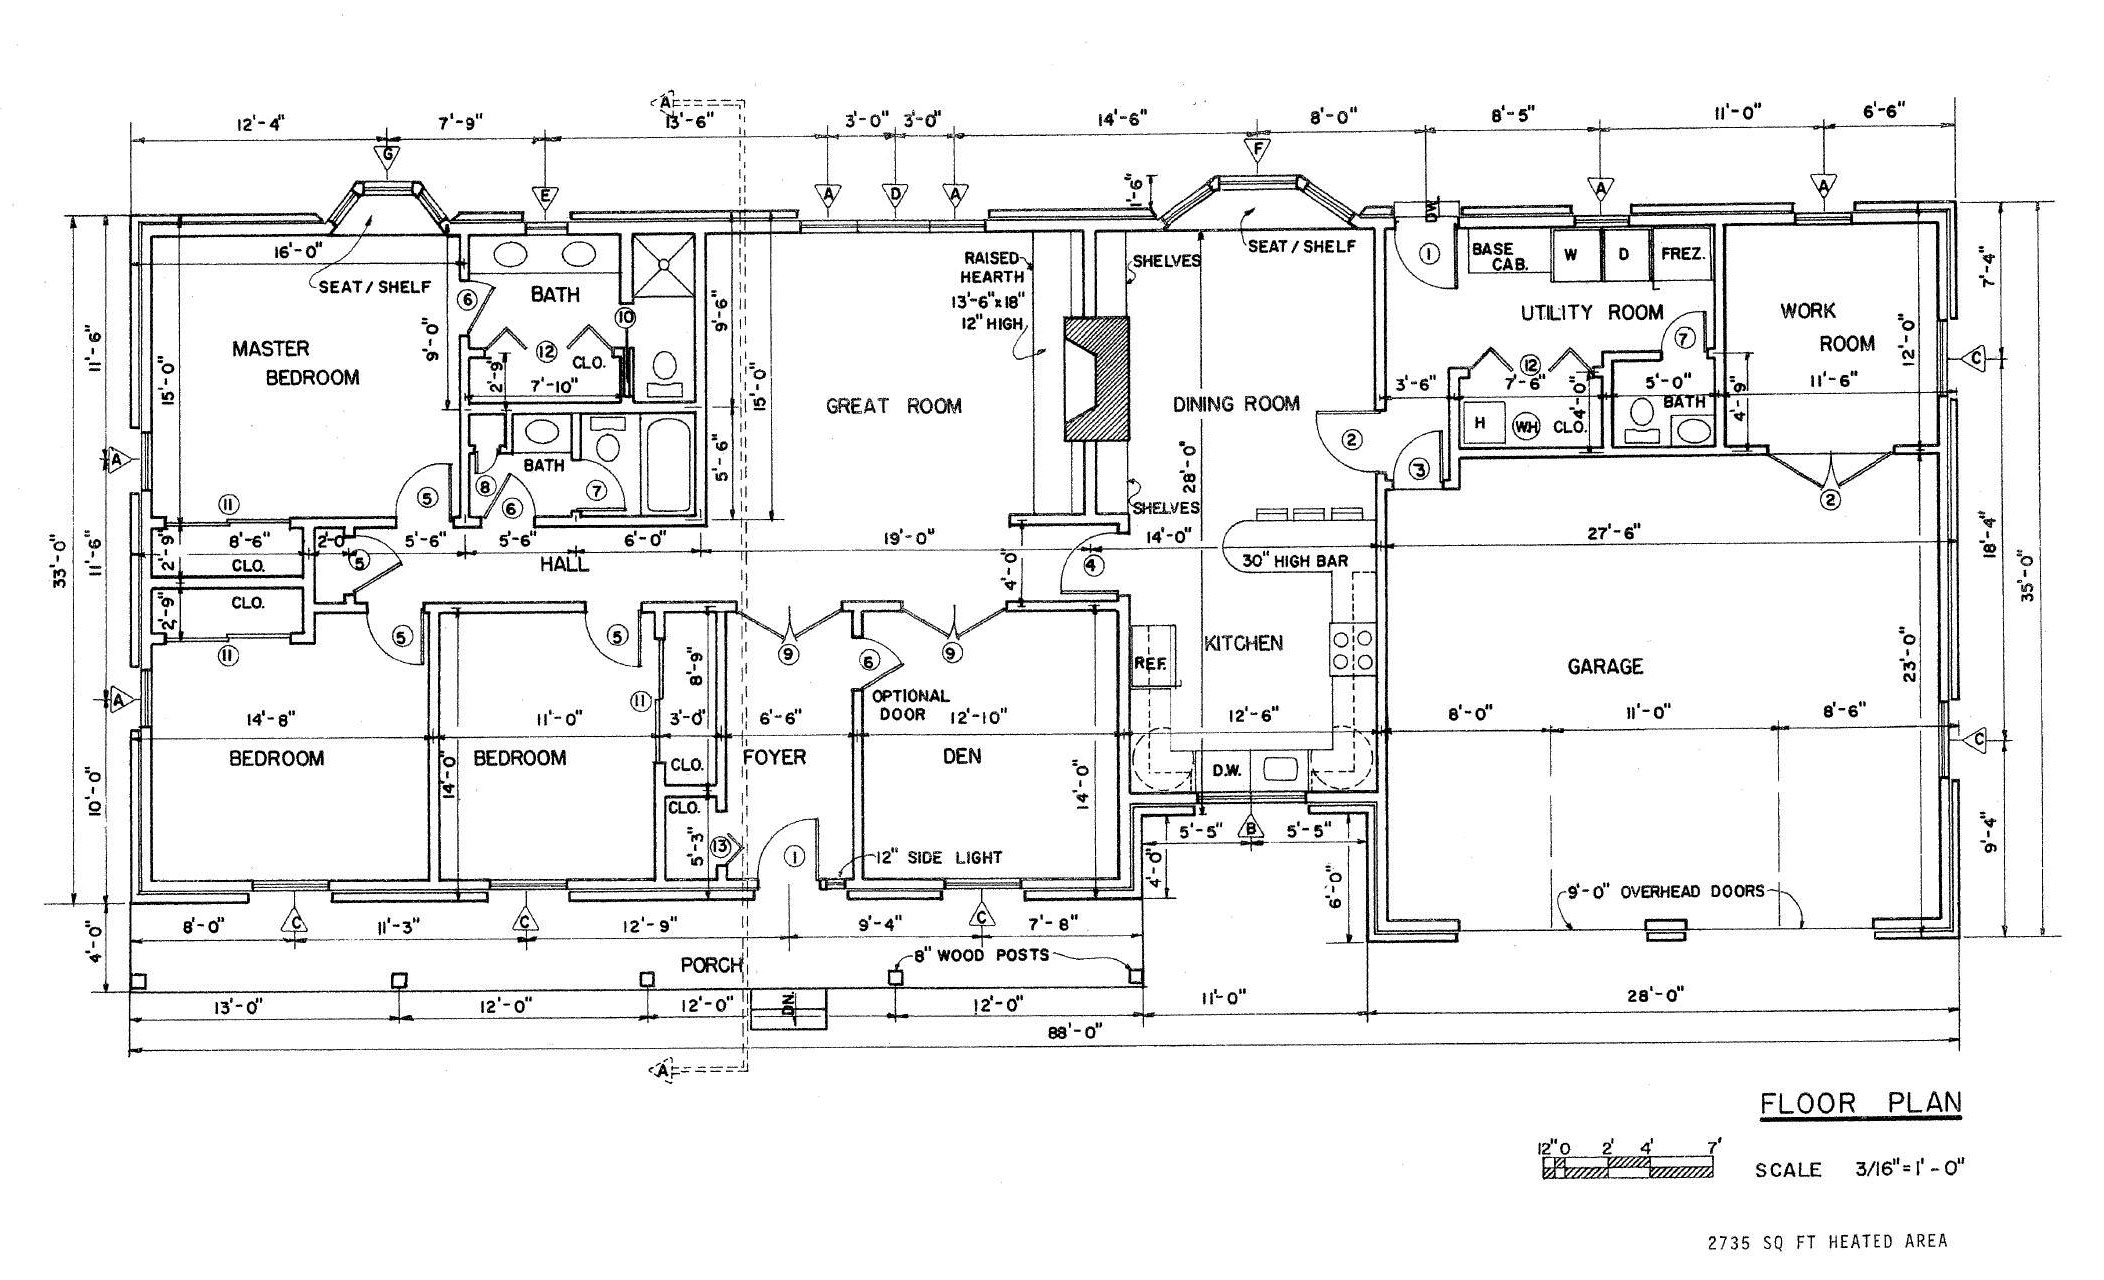 Pin First Floor Plan Of Ranch House Plan 73165 on Pinterest